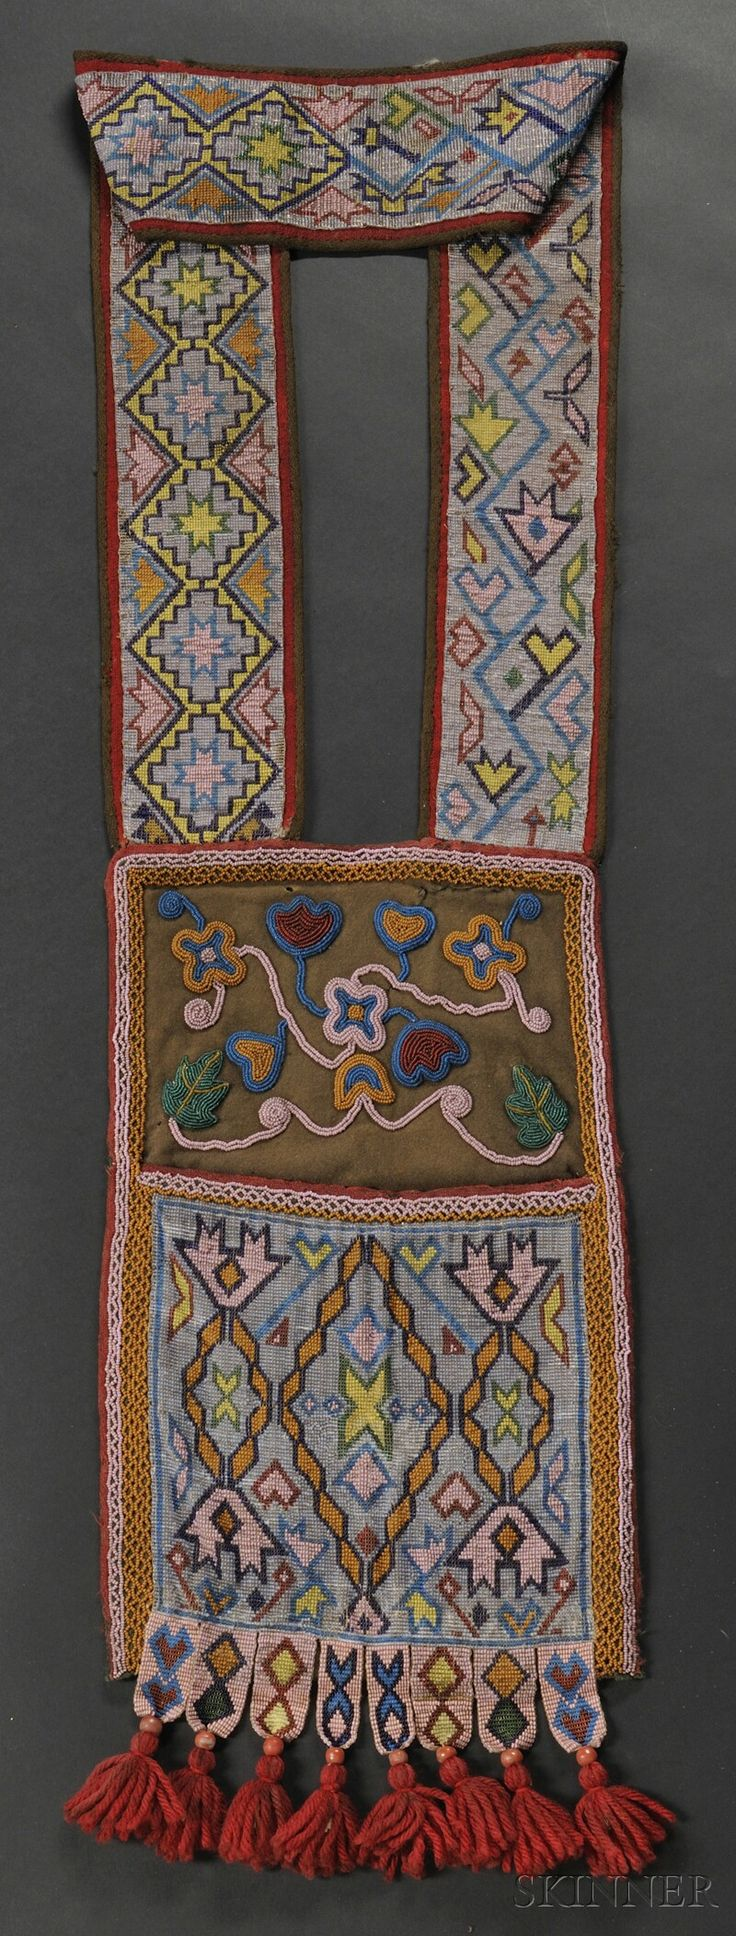 Fantastic free standing tree fort 401425 home design ideas - Chippewa Loom Beaded Cloth Bandolier Bag C 1870s Beaded With Floral Design Above